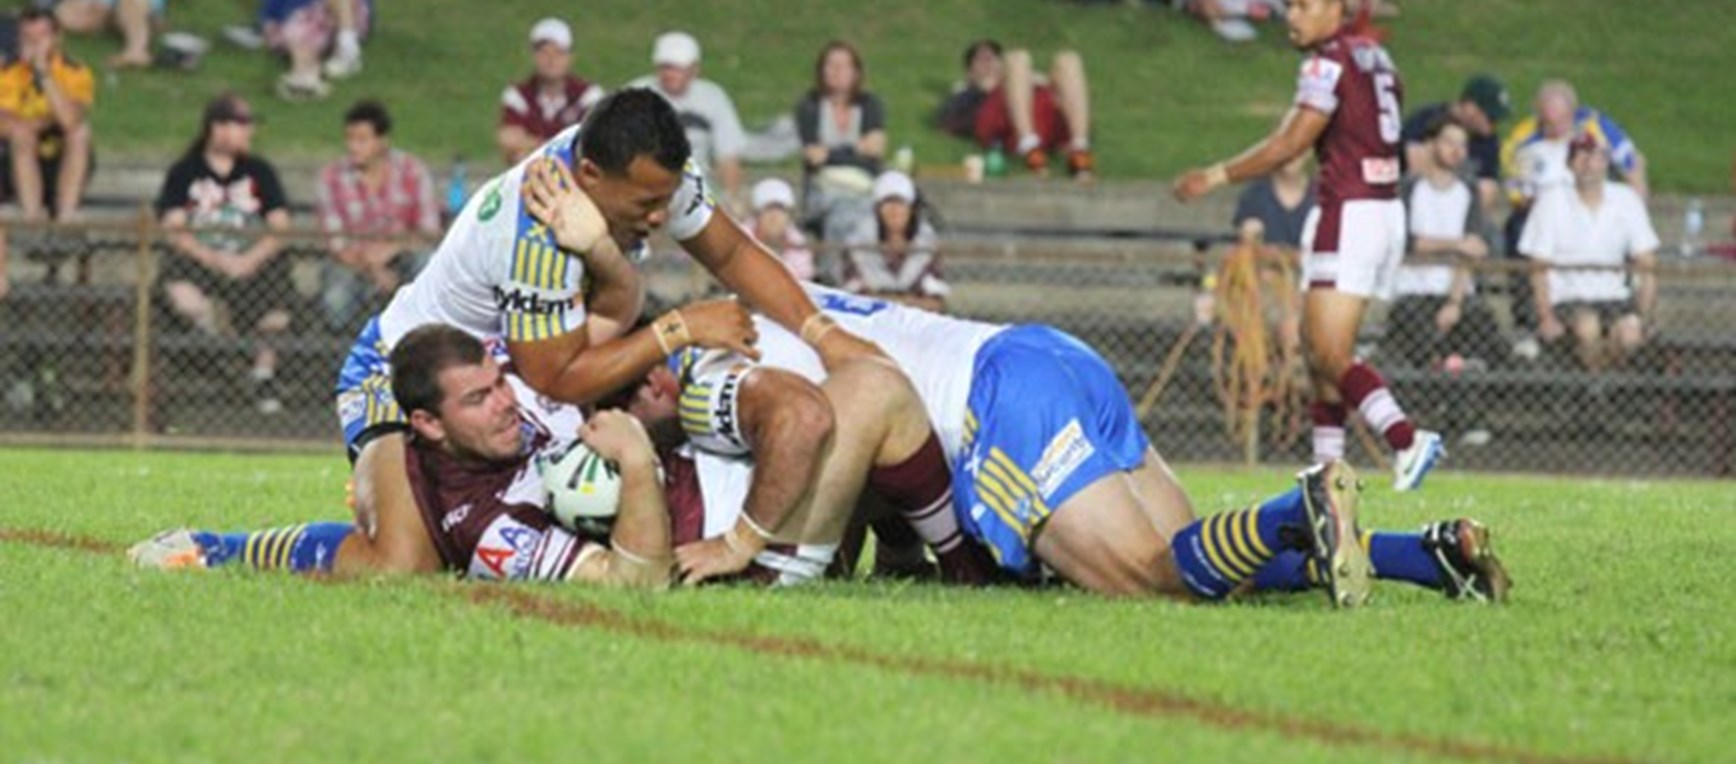 Photo gallery: Sea Eagles v Eels trial